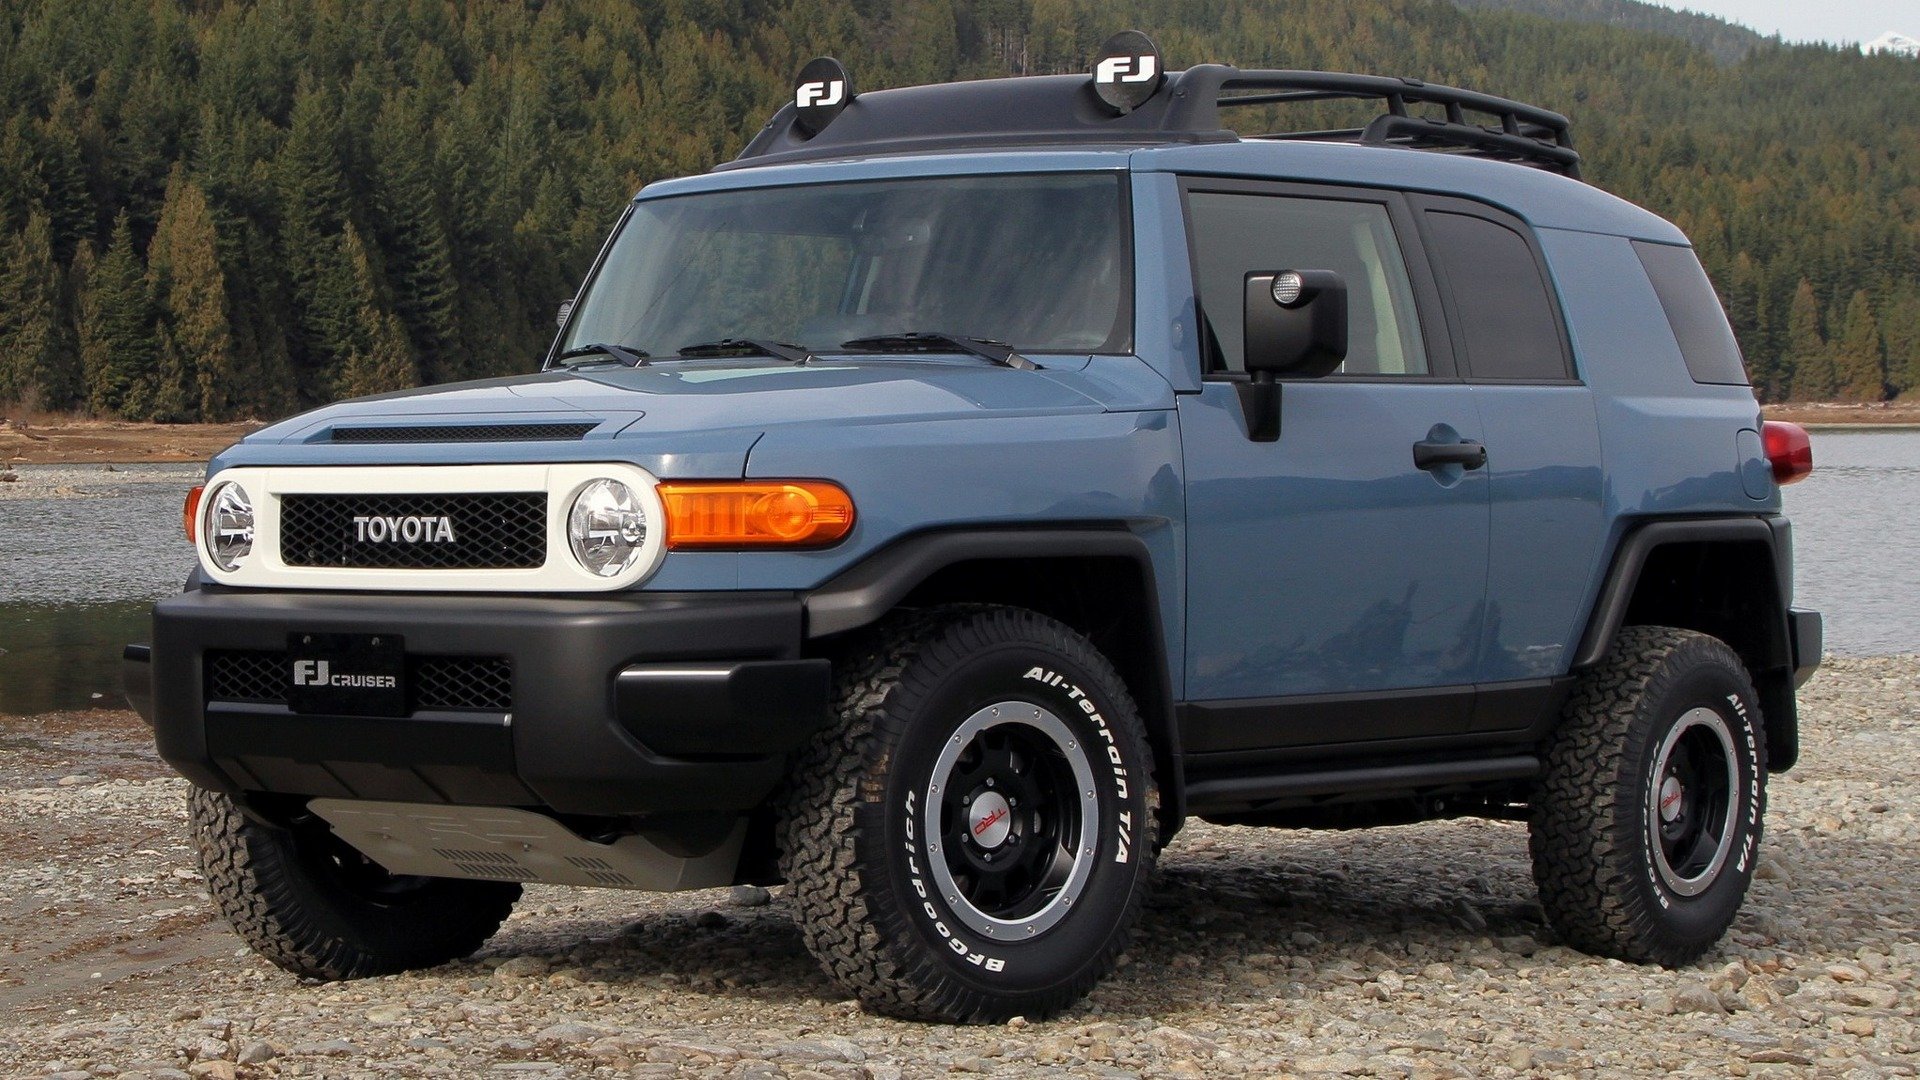 Toyota Ft 4X >> Toyota Ft 4x Trademark Could Be For Fj Cruiser Replacement